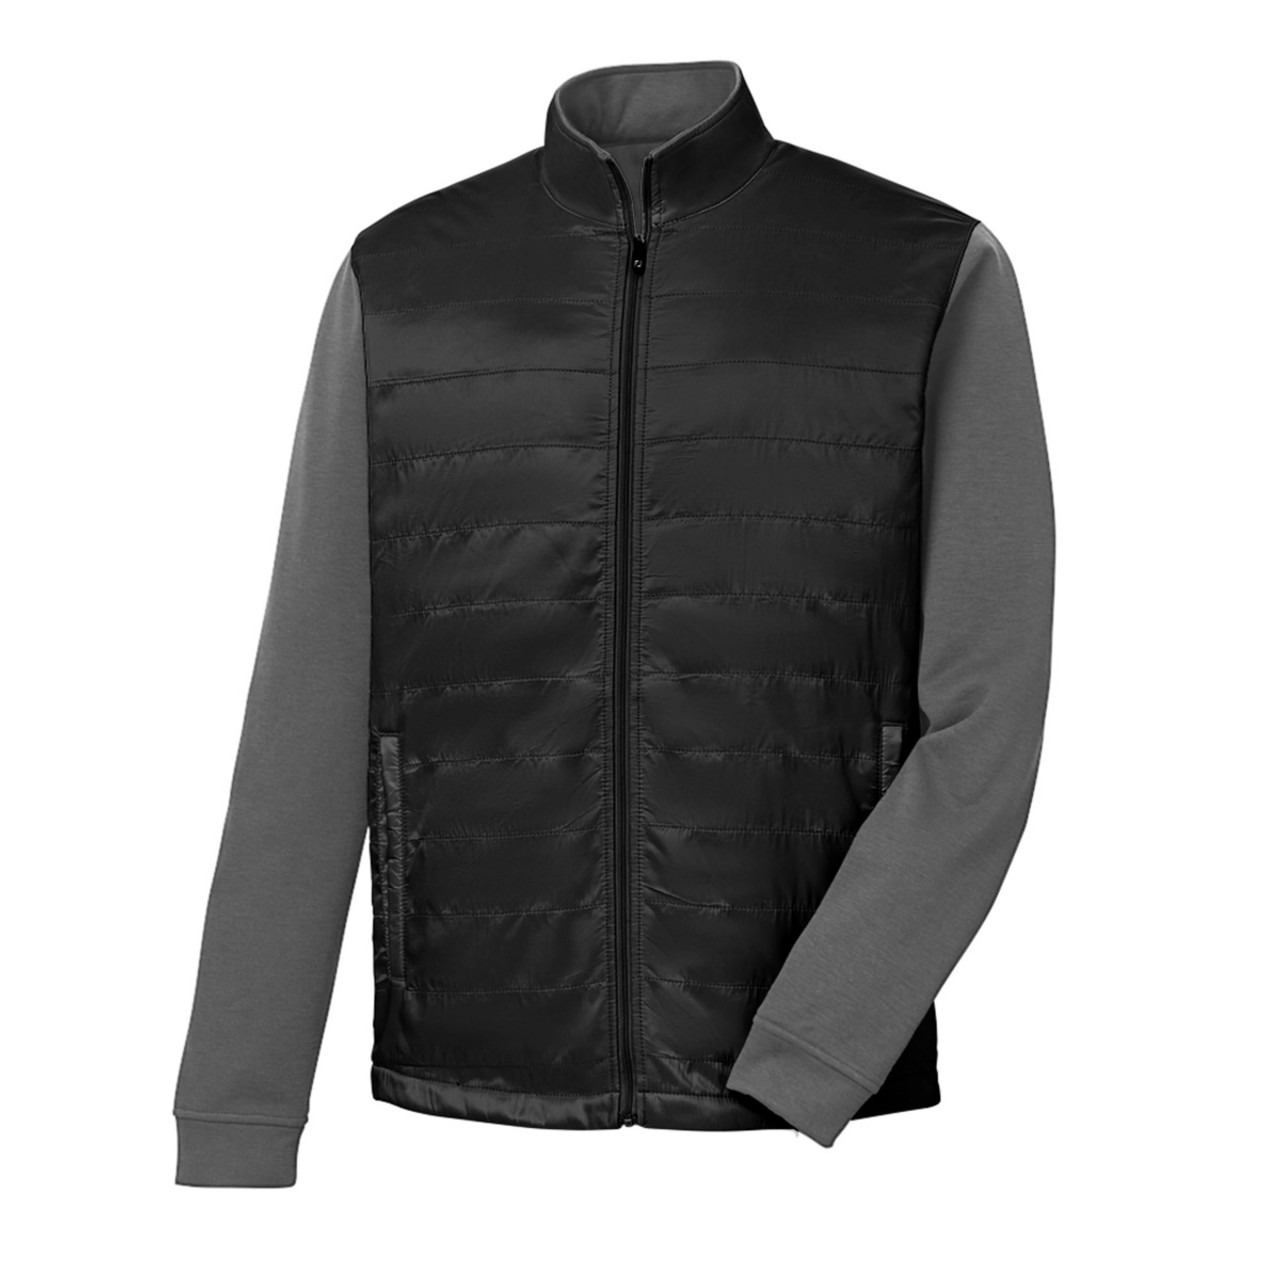 FootJoy Full-Zip Hybrid Jacket - Black / Charcoal (25212)